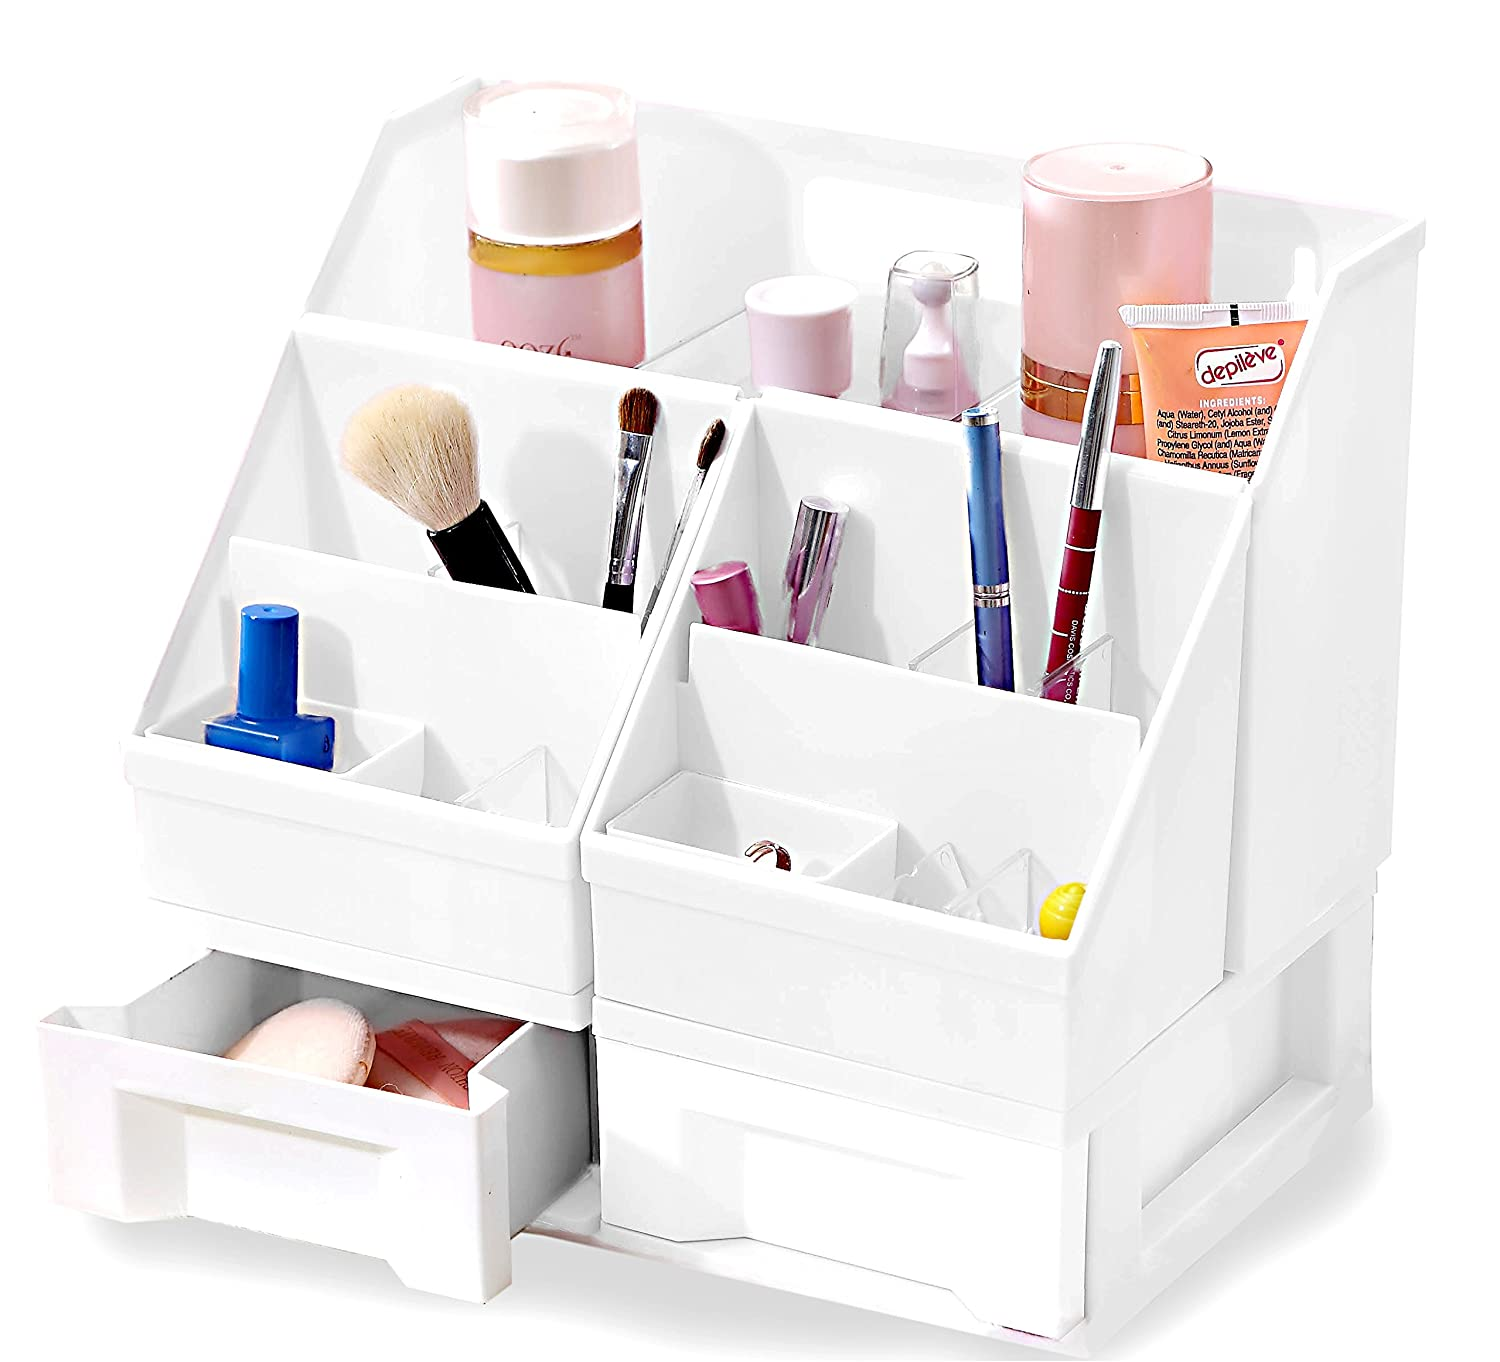 Uncluttered Designs Makeup Organizer with Drawers (Black) COMINHKPR121799